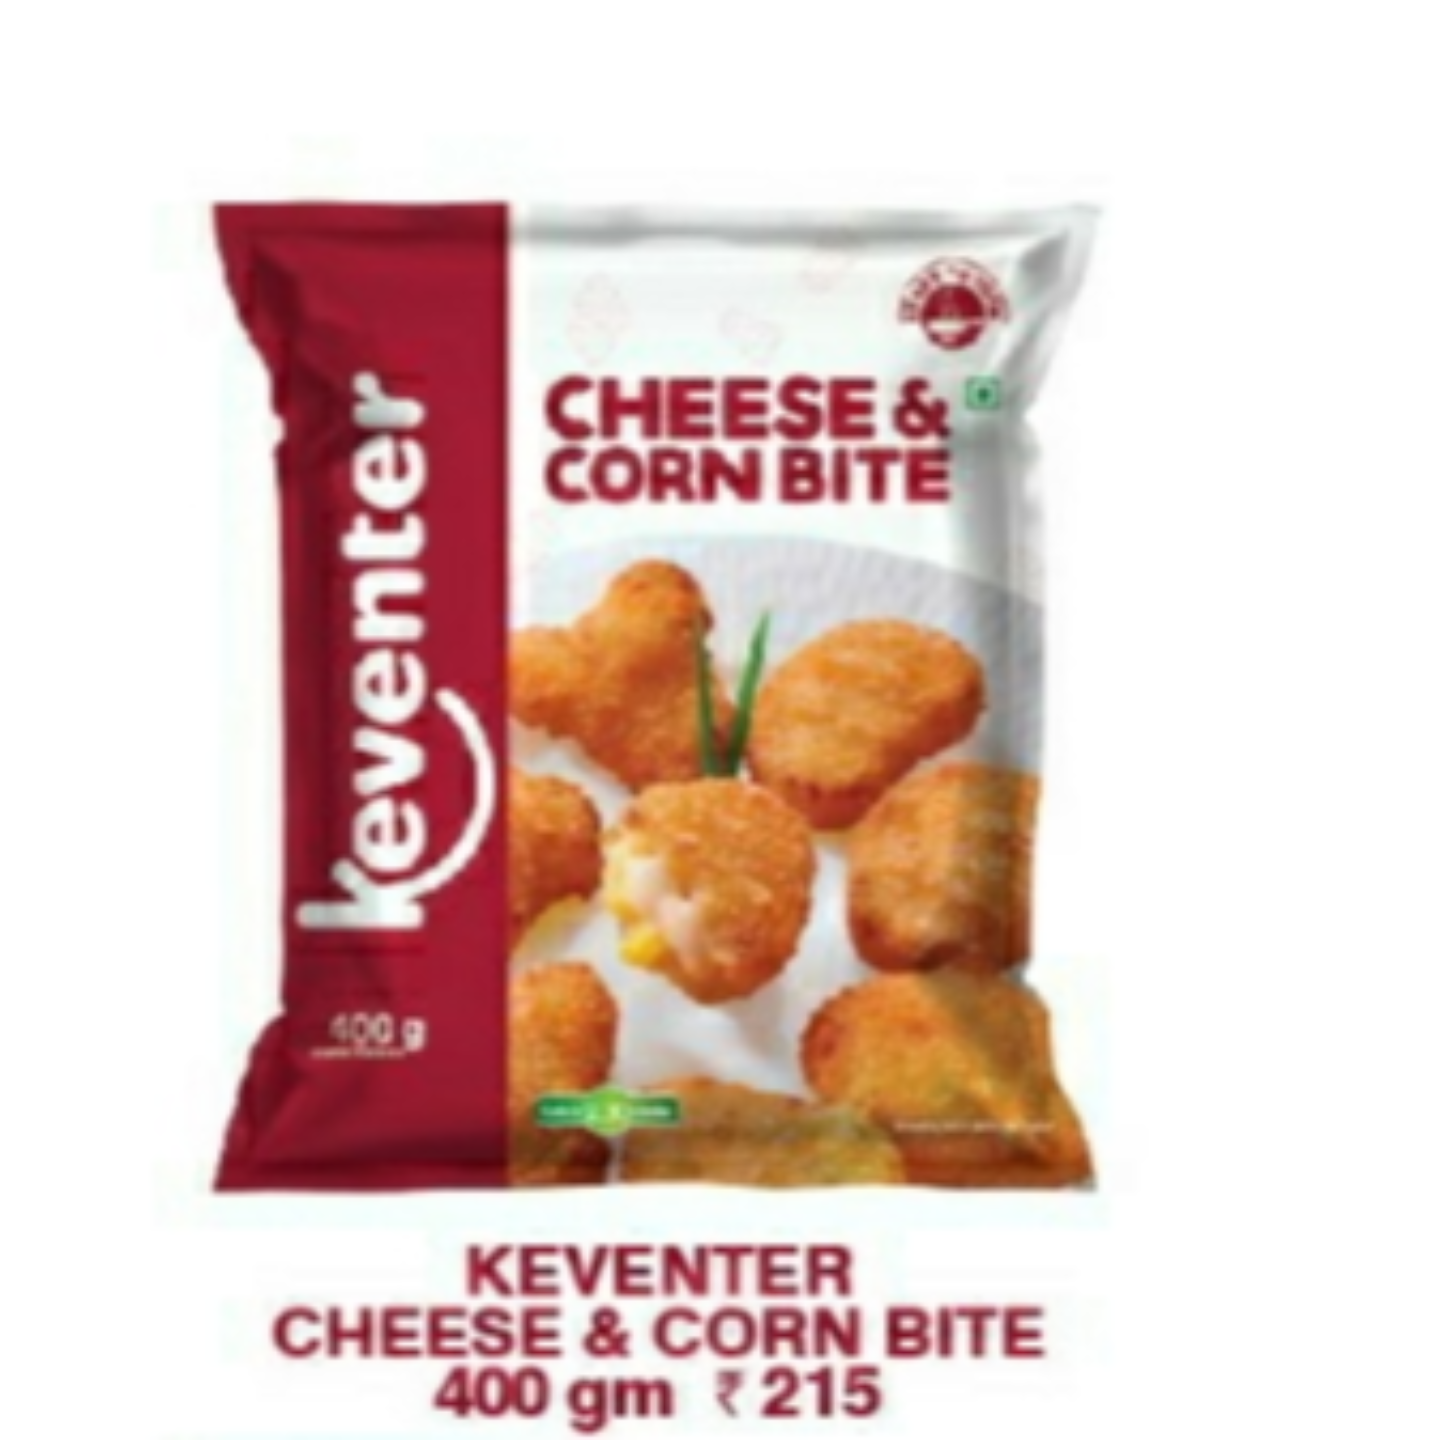 Cheese & Corn Bites 400gms